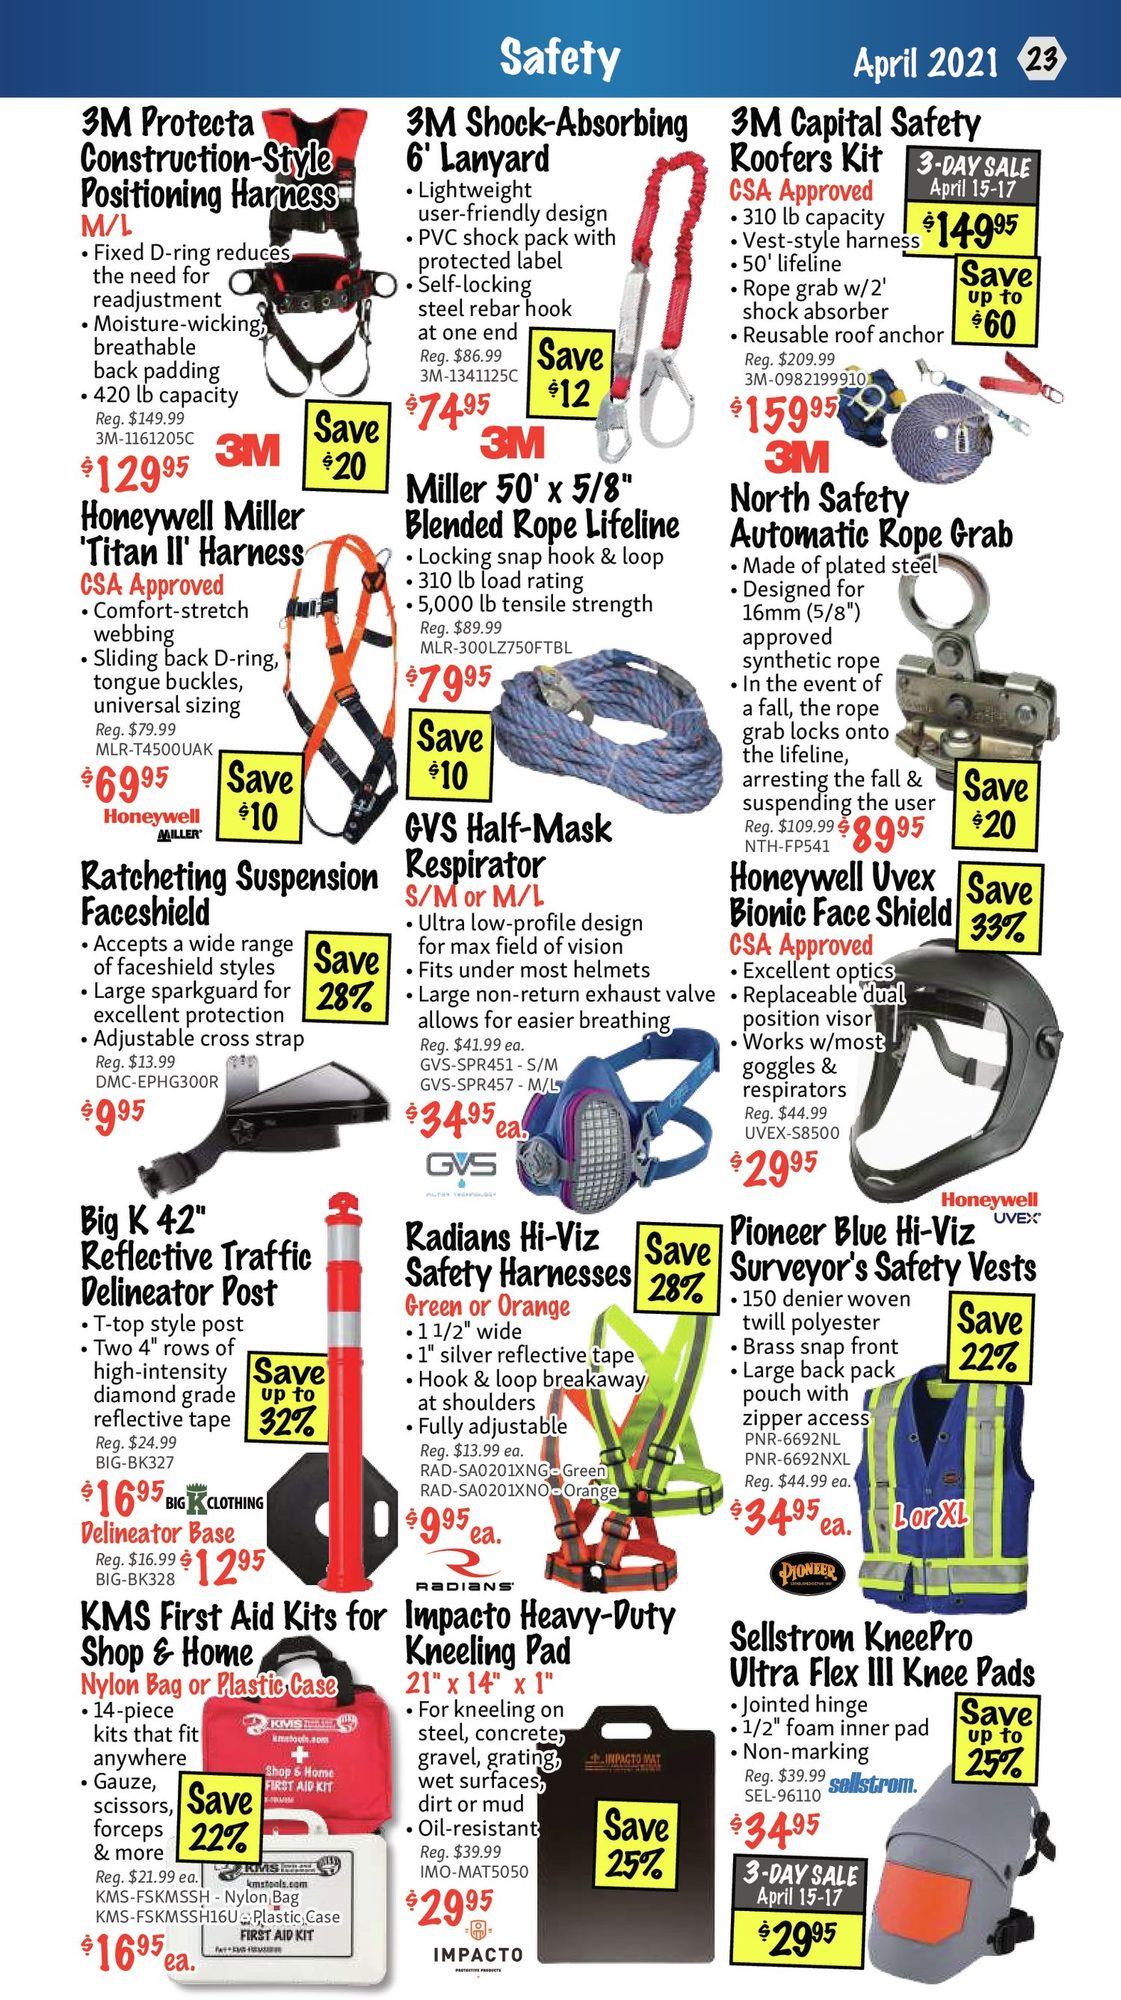 KMS Tools - Hand Tools, Air Tools & Compressor Sale - Page 23